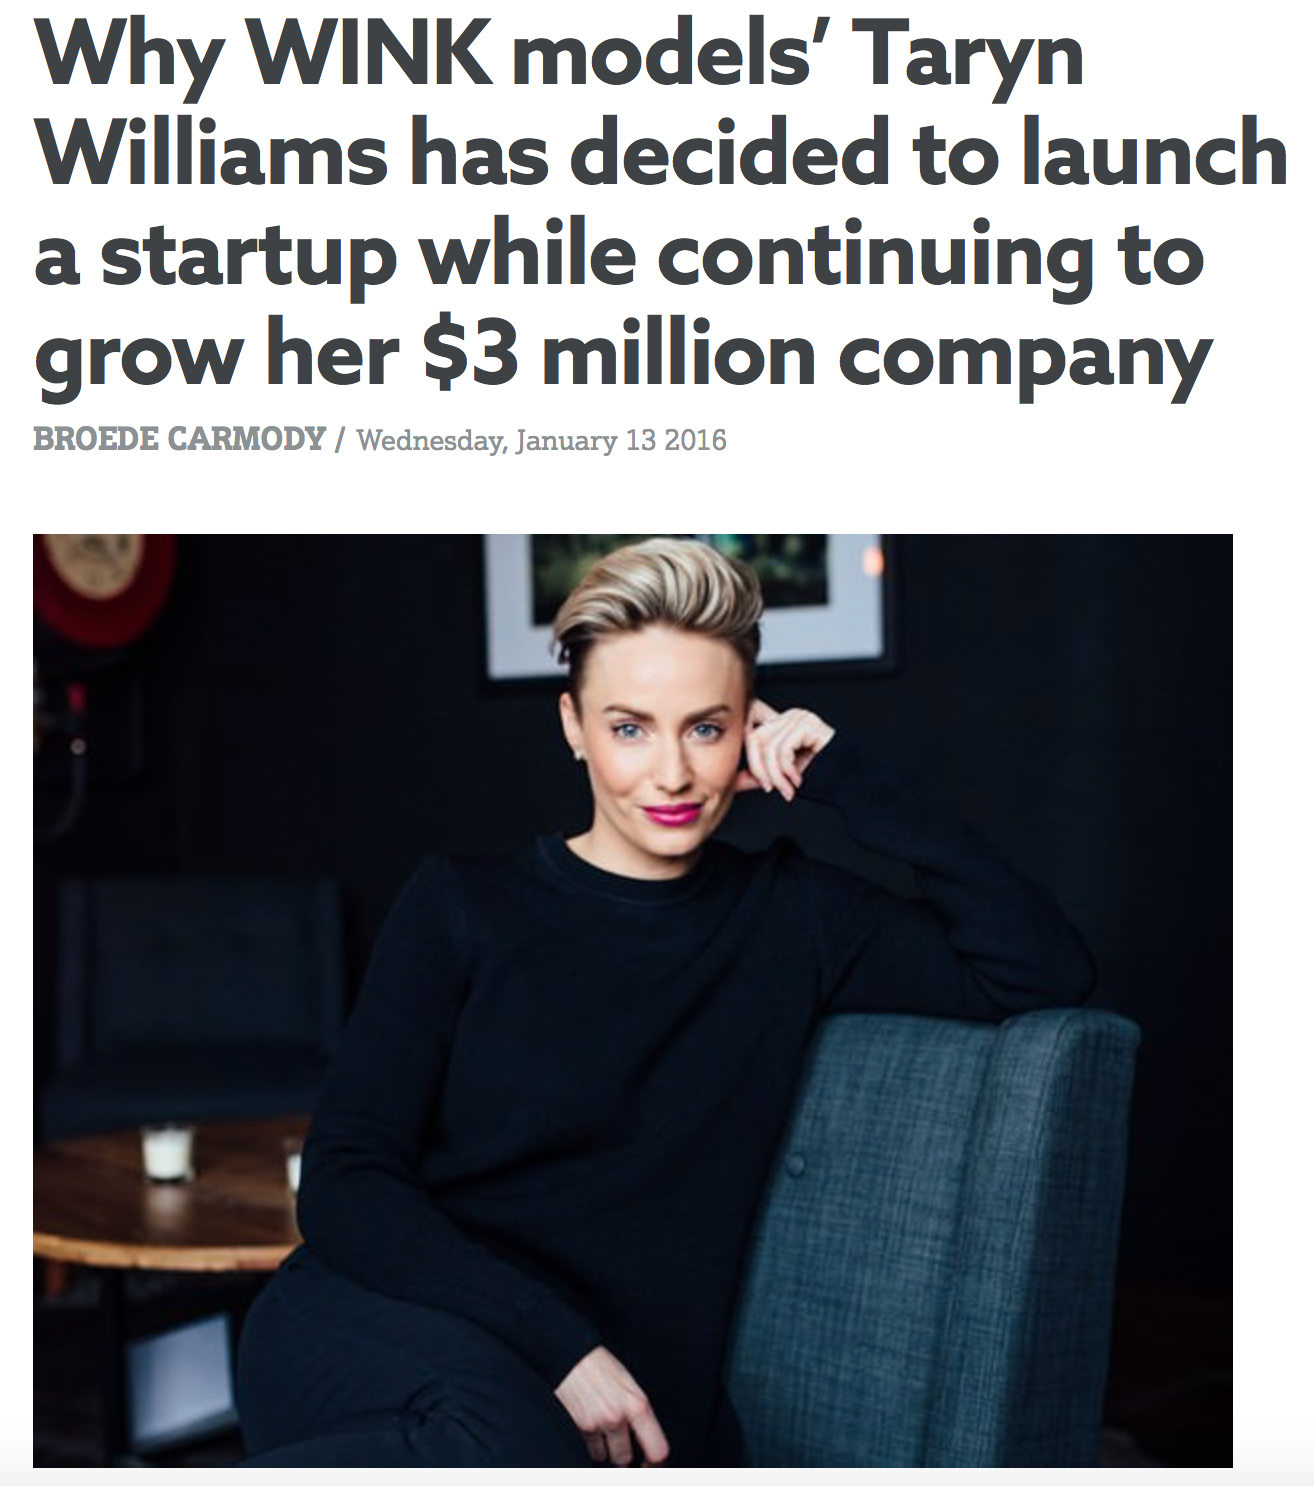 http://www.smartcompany.com.au//growth/49499-why-this-entrepreneur-has-decided-to-launch-a-startup-while-continuing-to-grow-her-3-million-company/